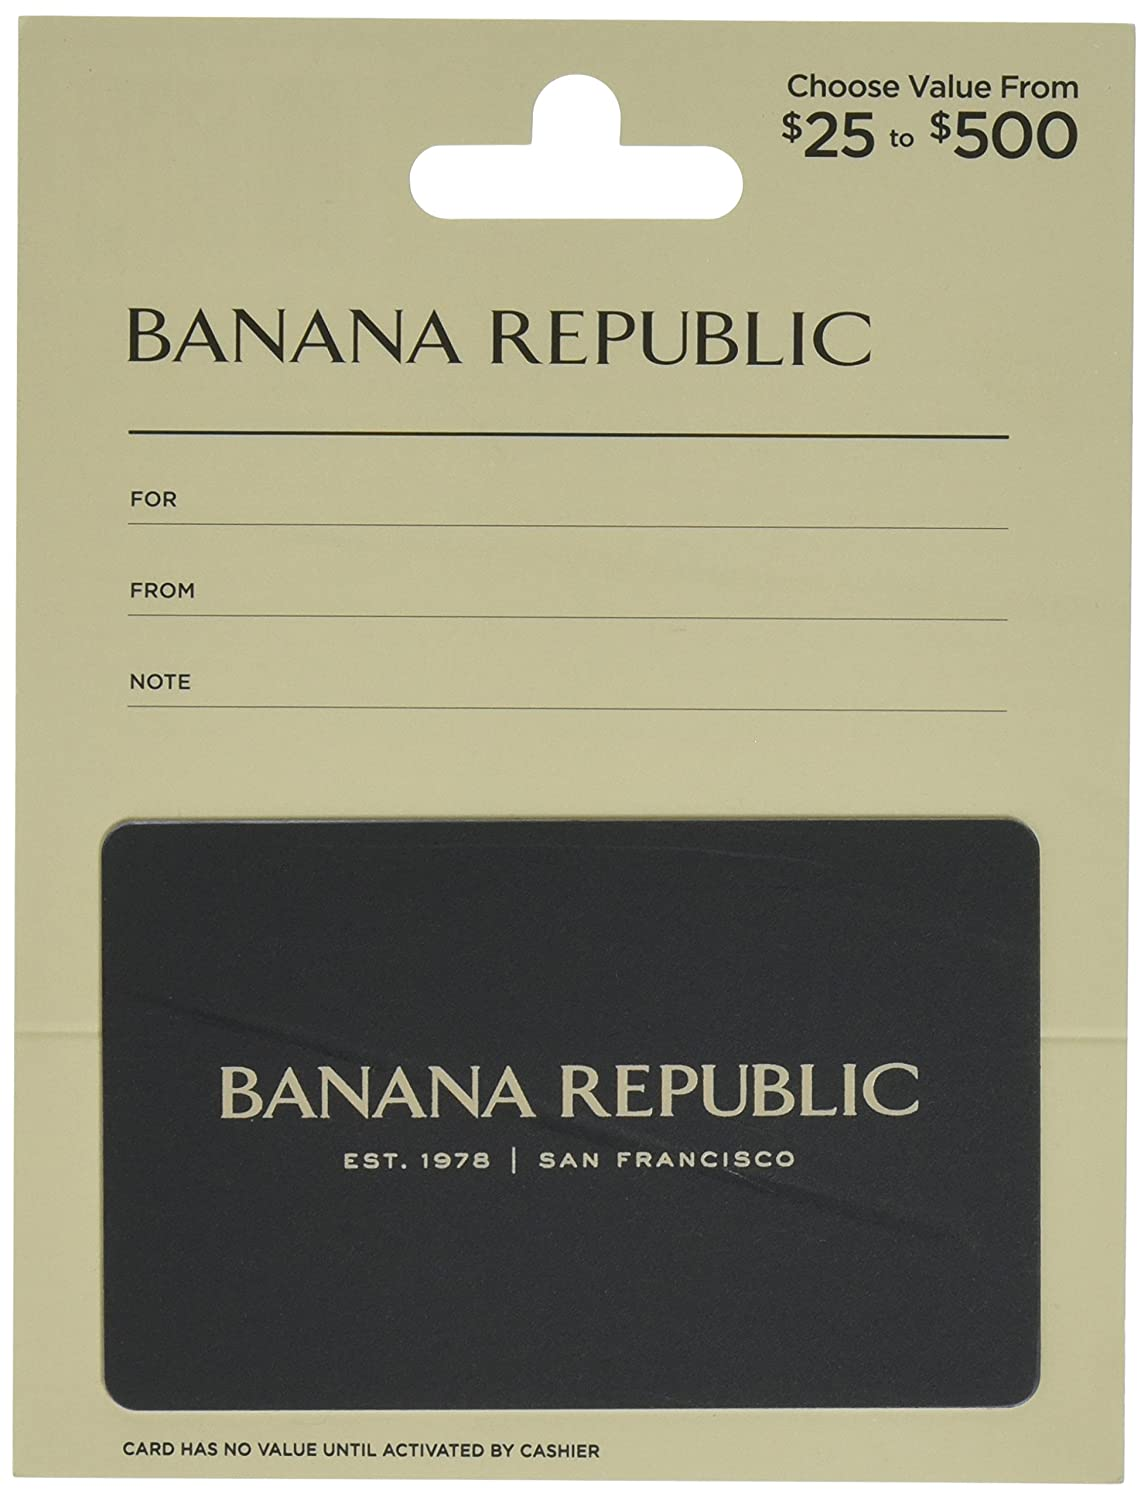 Banana Republic Gift Card Banana Republic $25 Gift Card